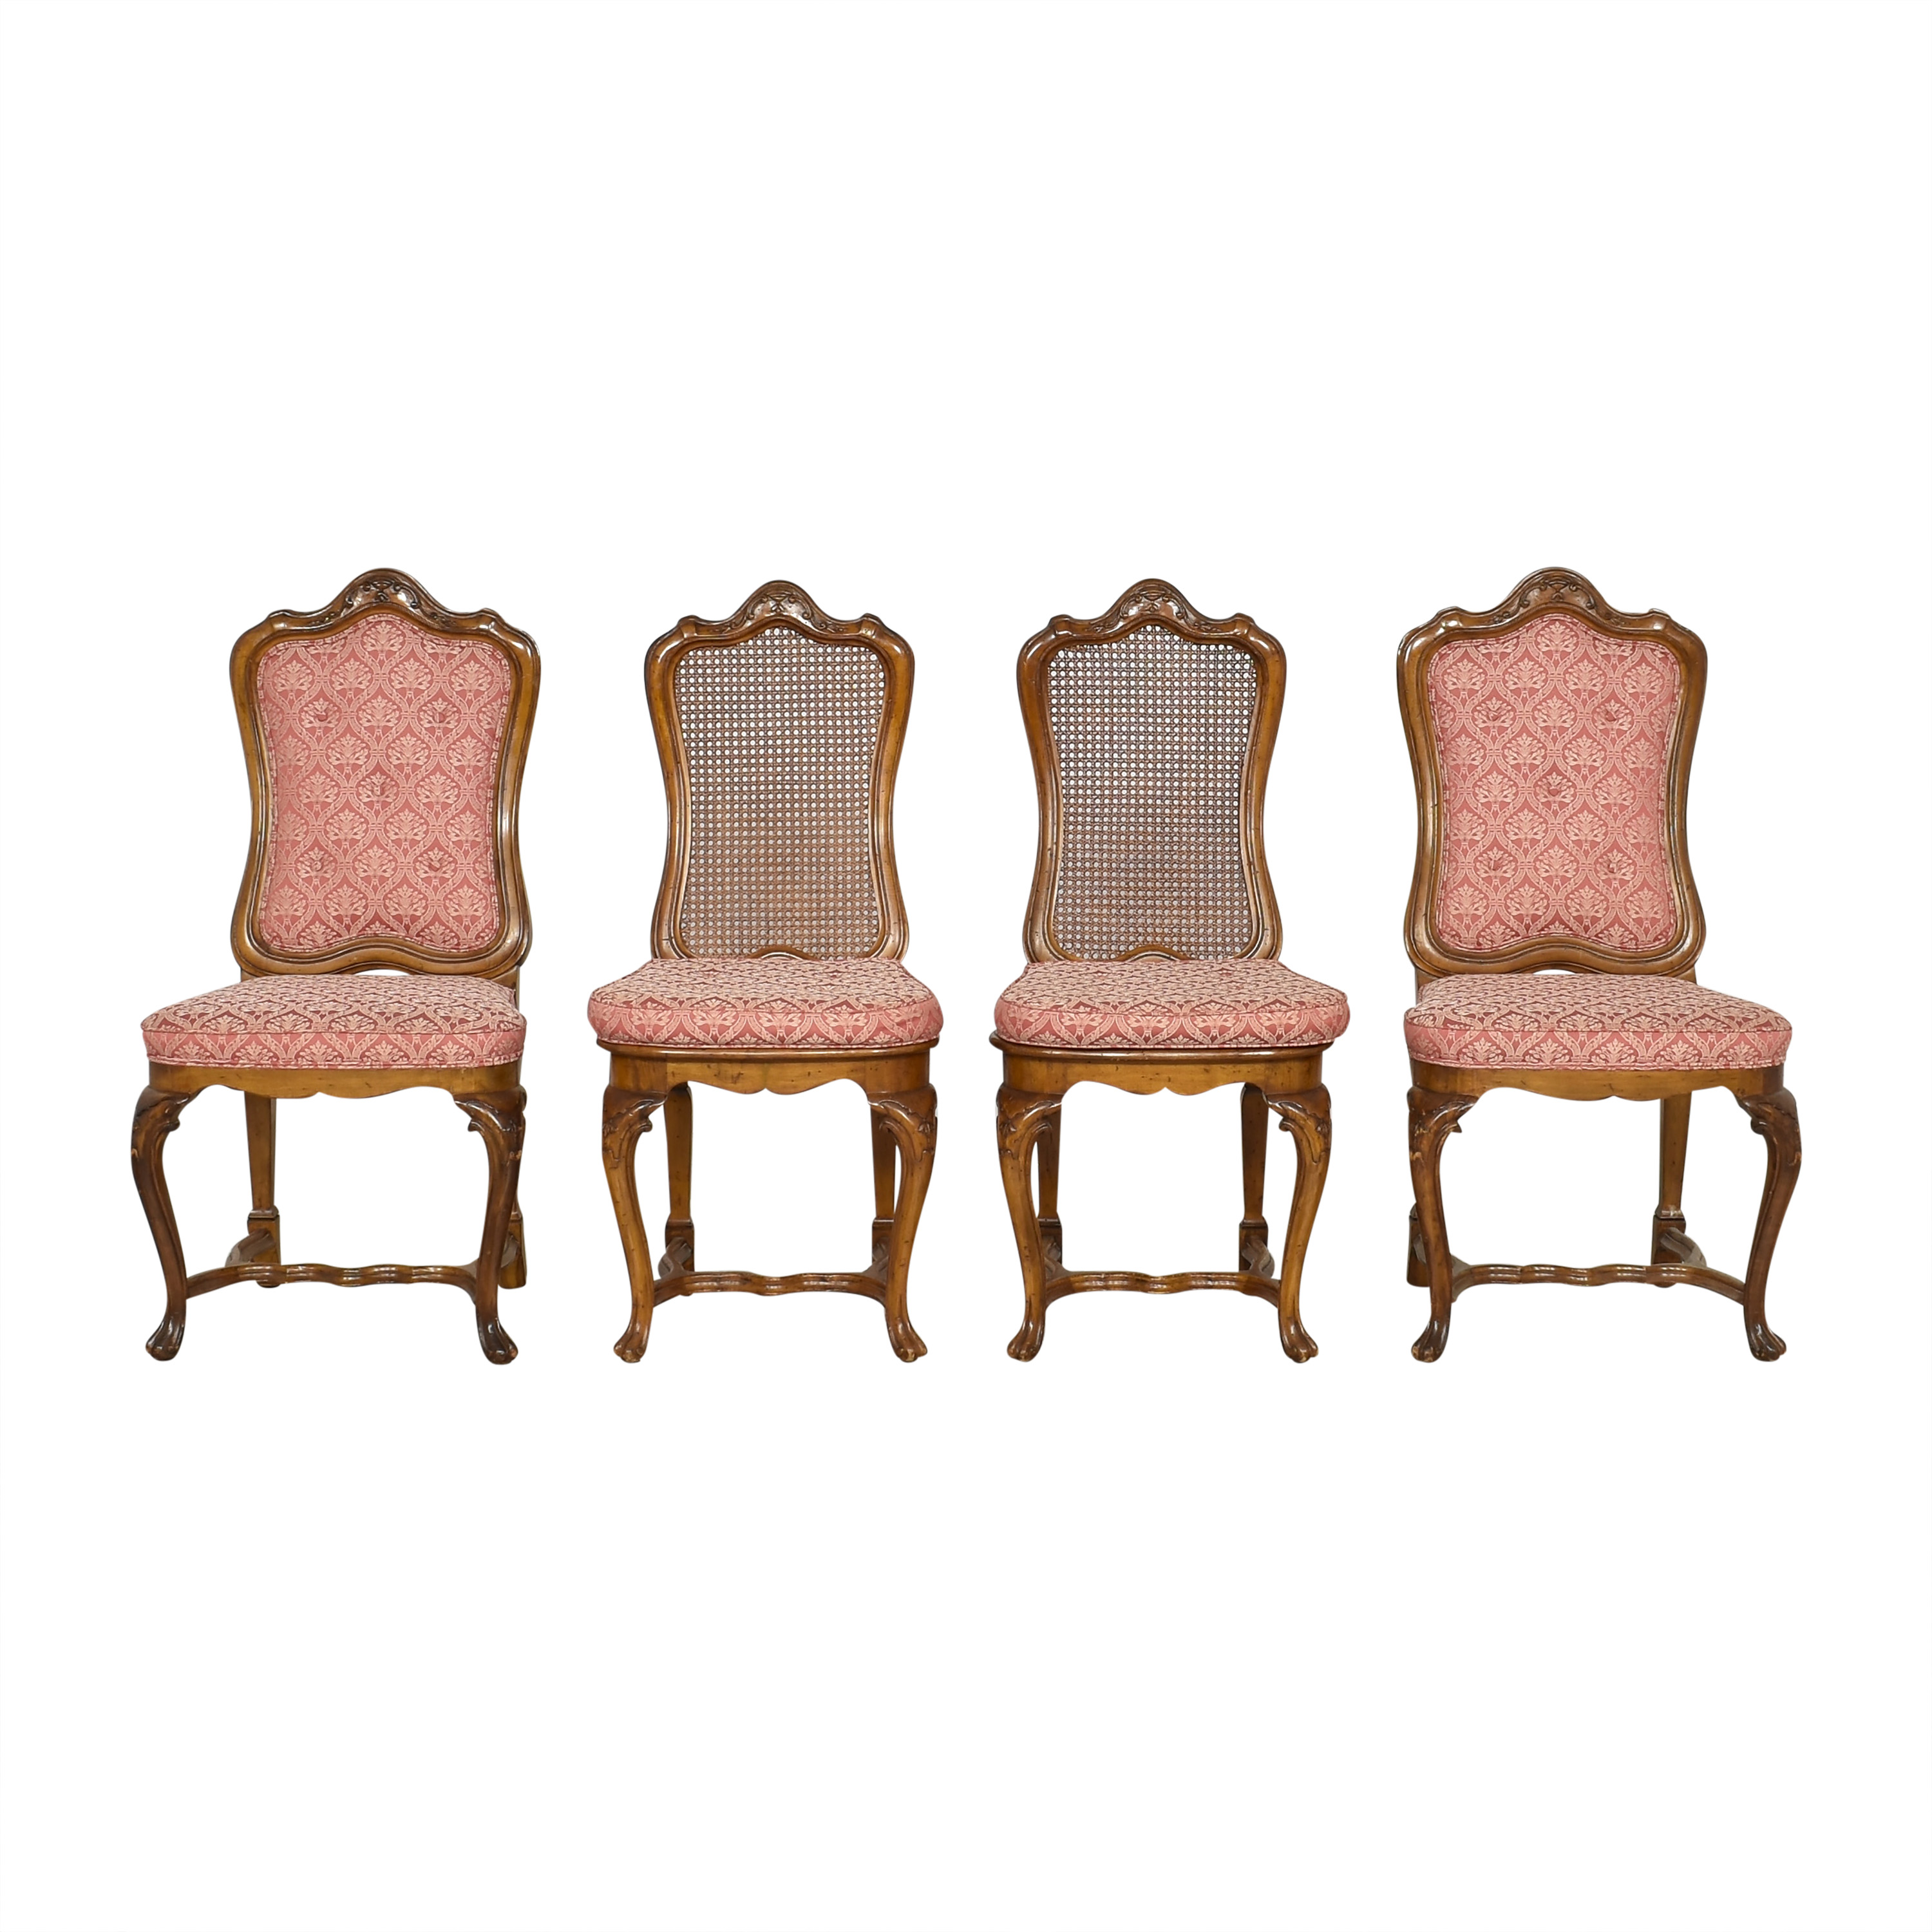 French-Style Dining Chairs on sale